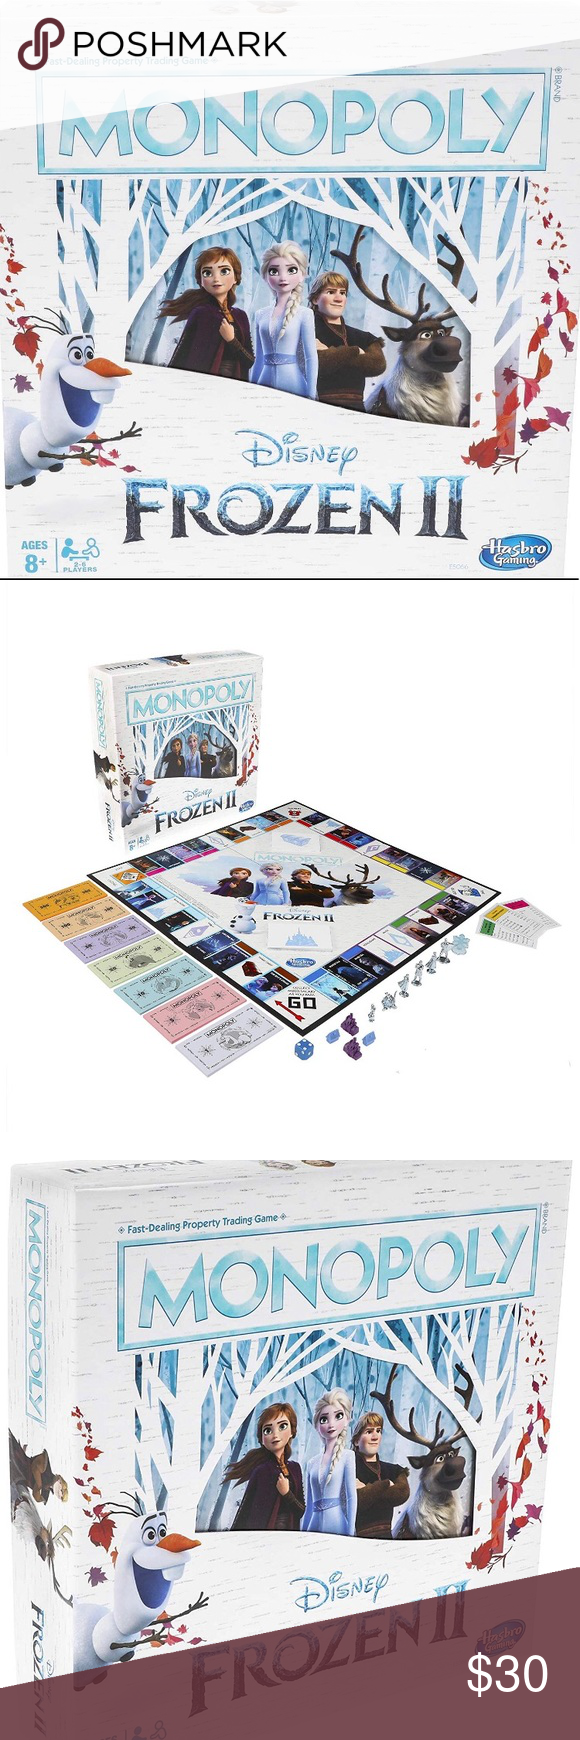 ️Monopoly Game☃️ Disney Frozen 2 Edition NWT in 2020